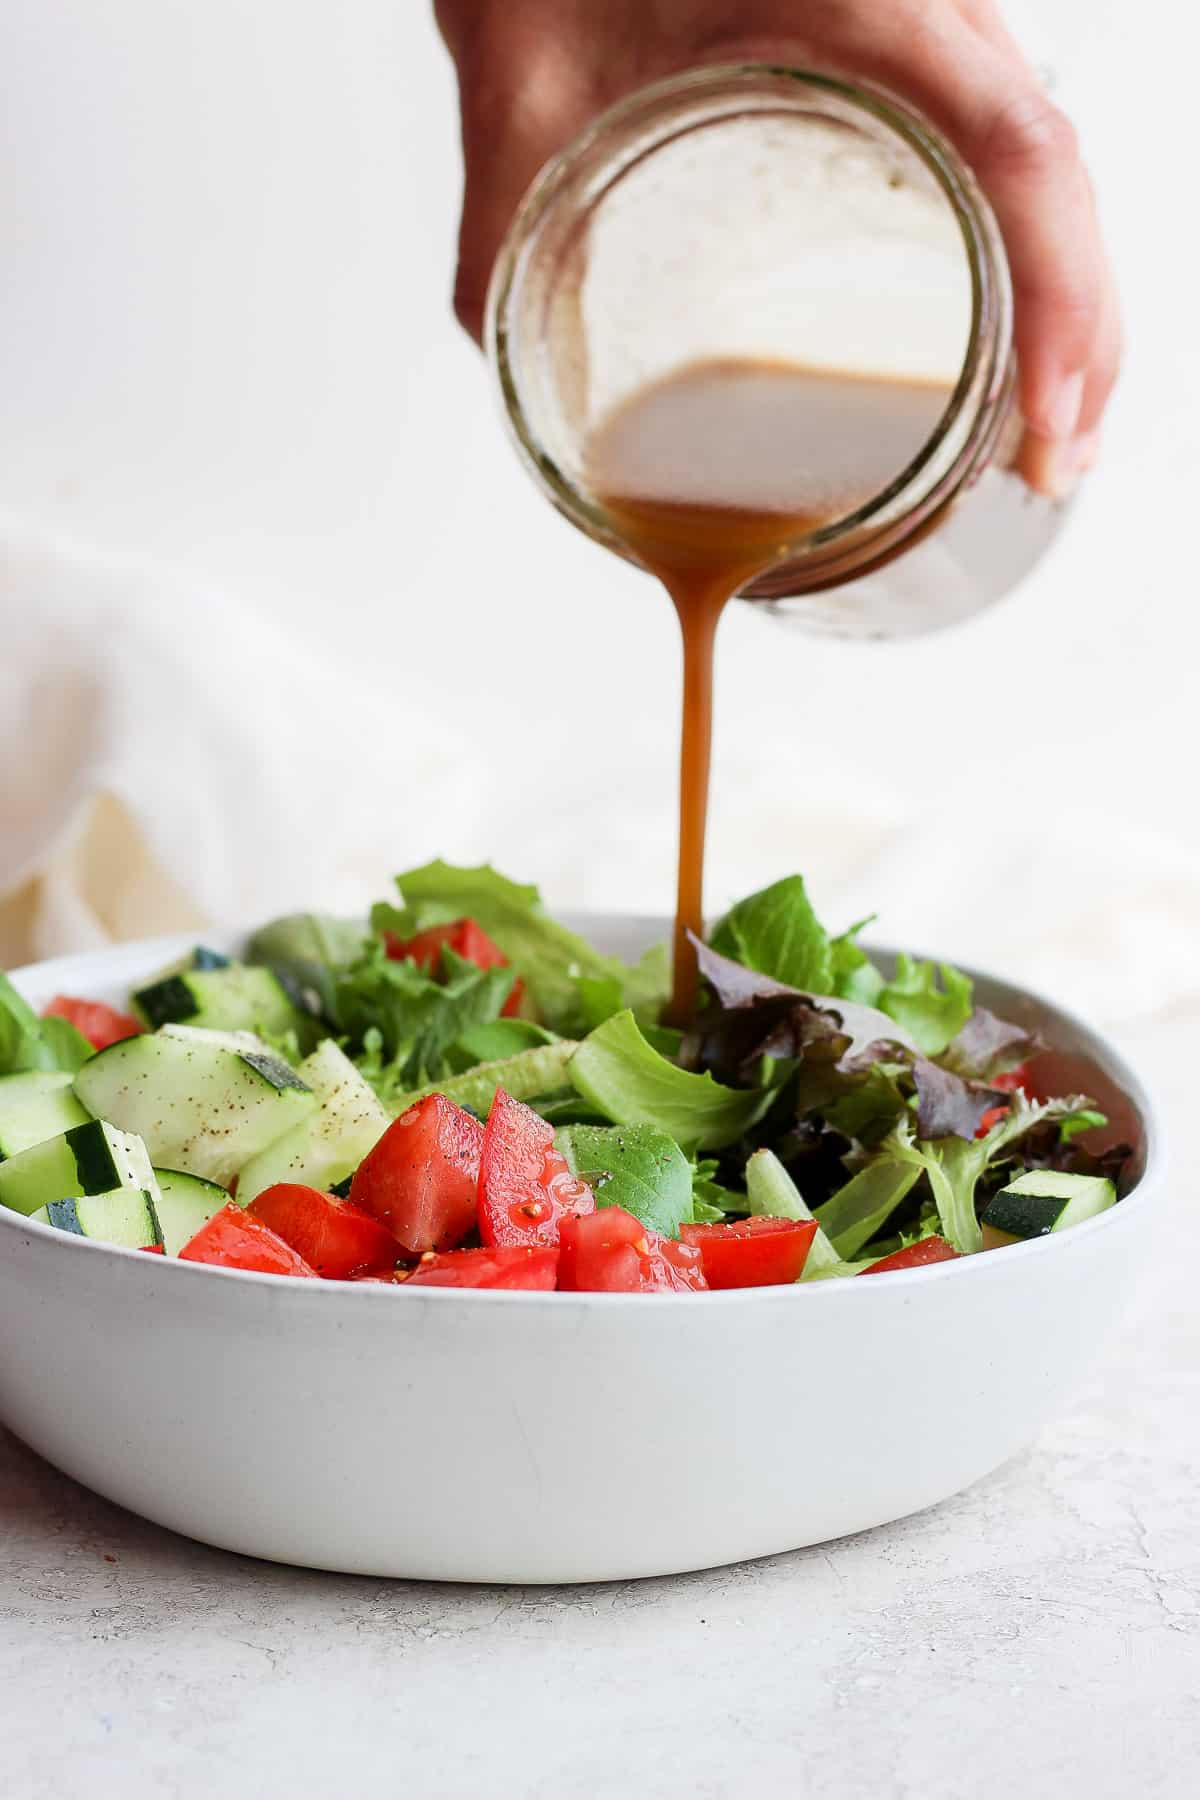 Homemade salad dressing getting poured over large bowl of salad